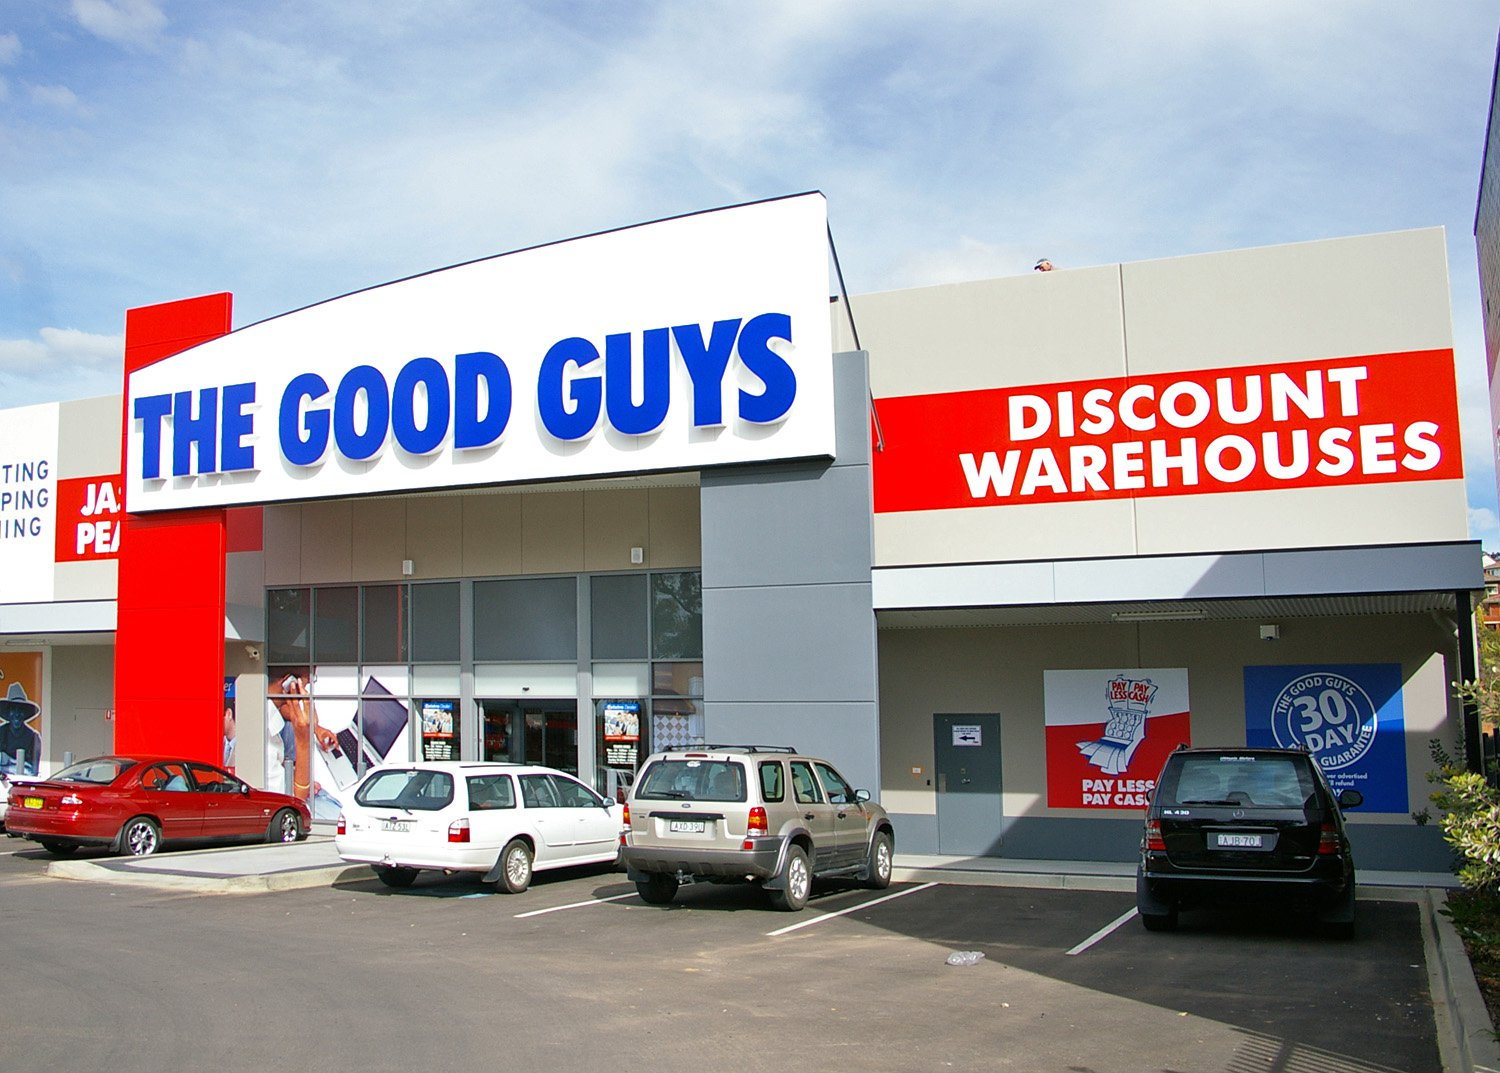 The Good Guys 3 COMMENT: The Good Guys Under Smart Will The Brand Get Roughed Up A Bit?